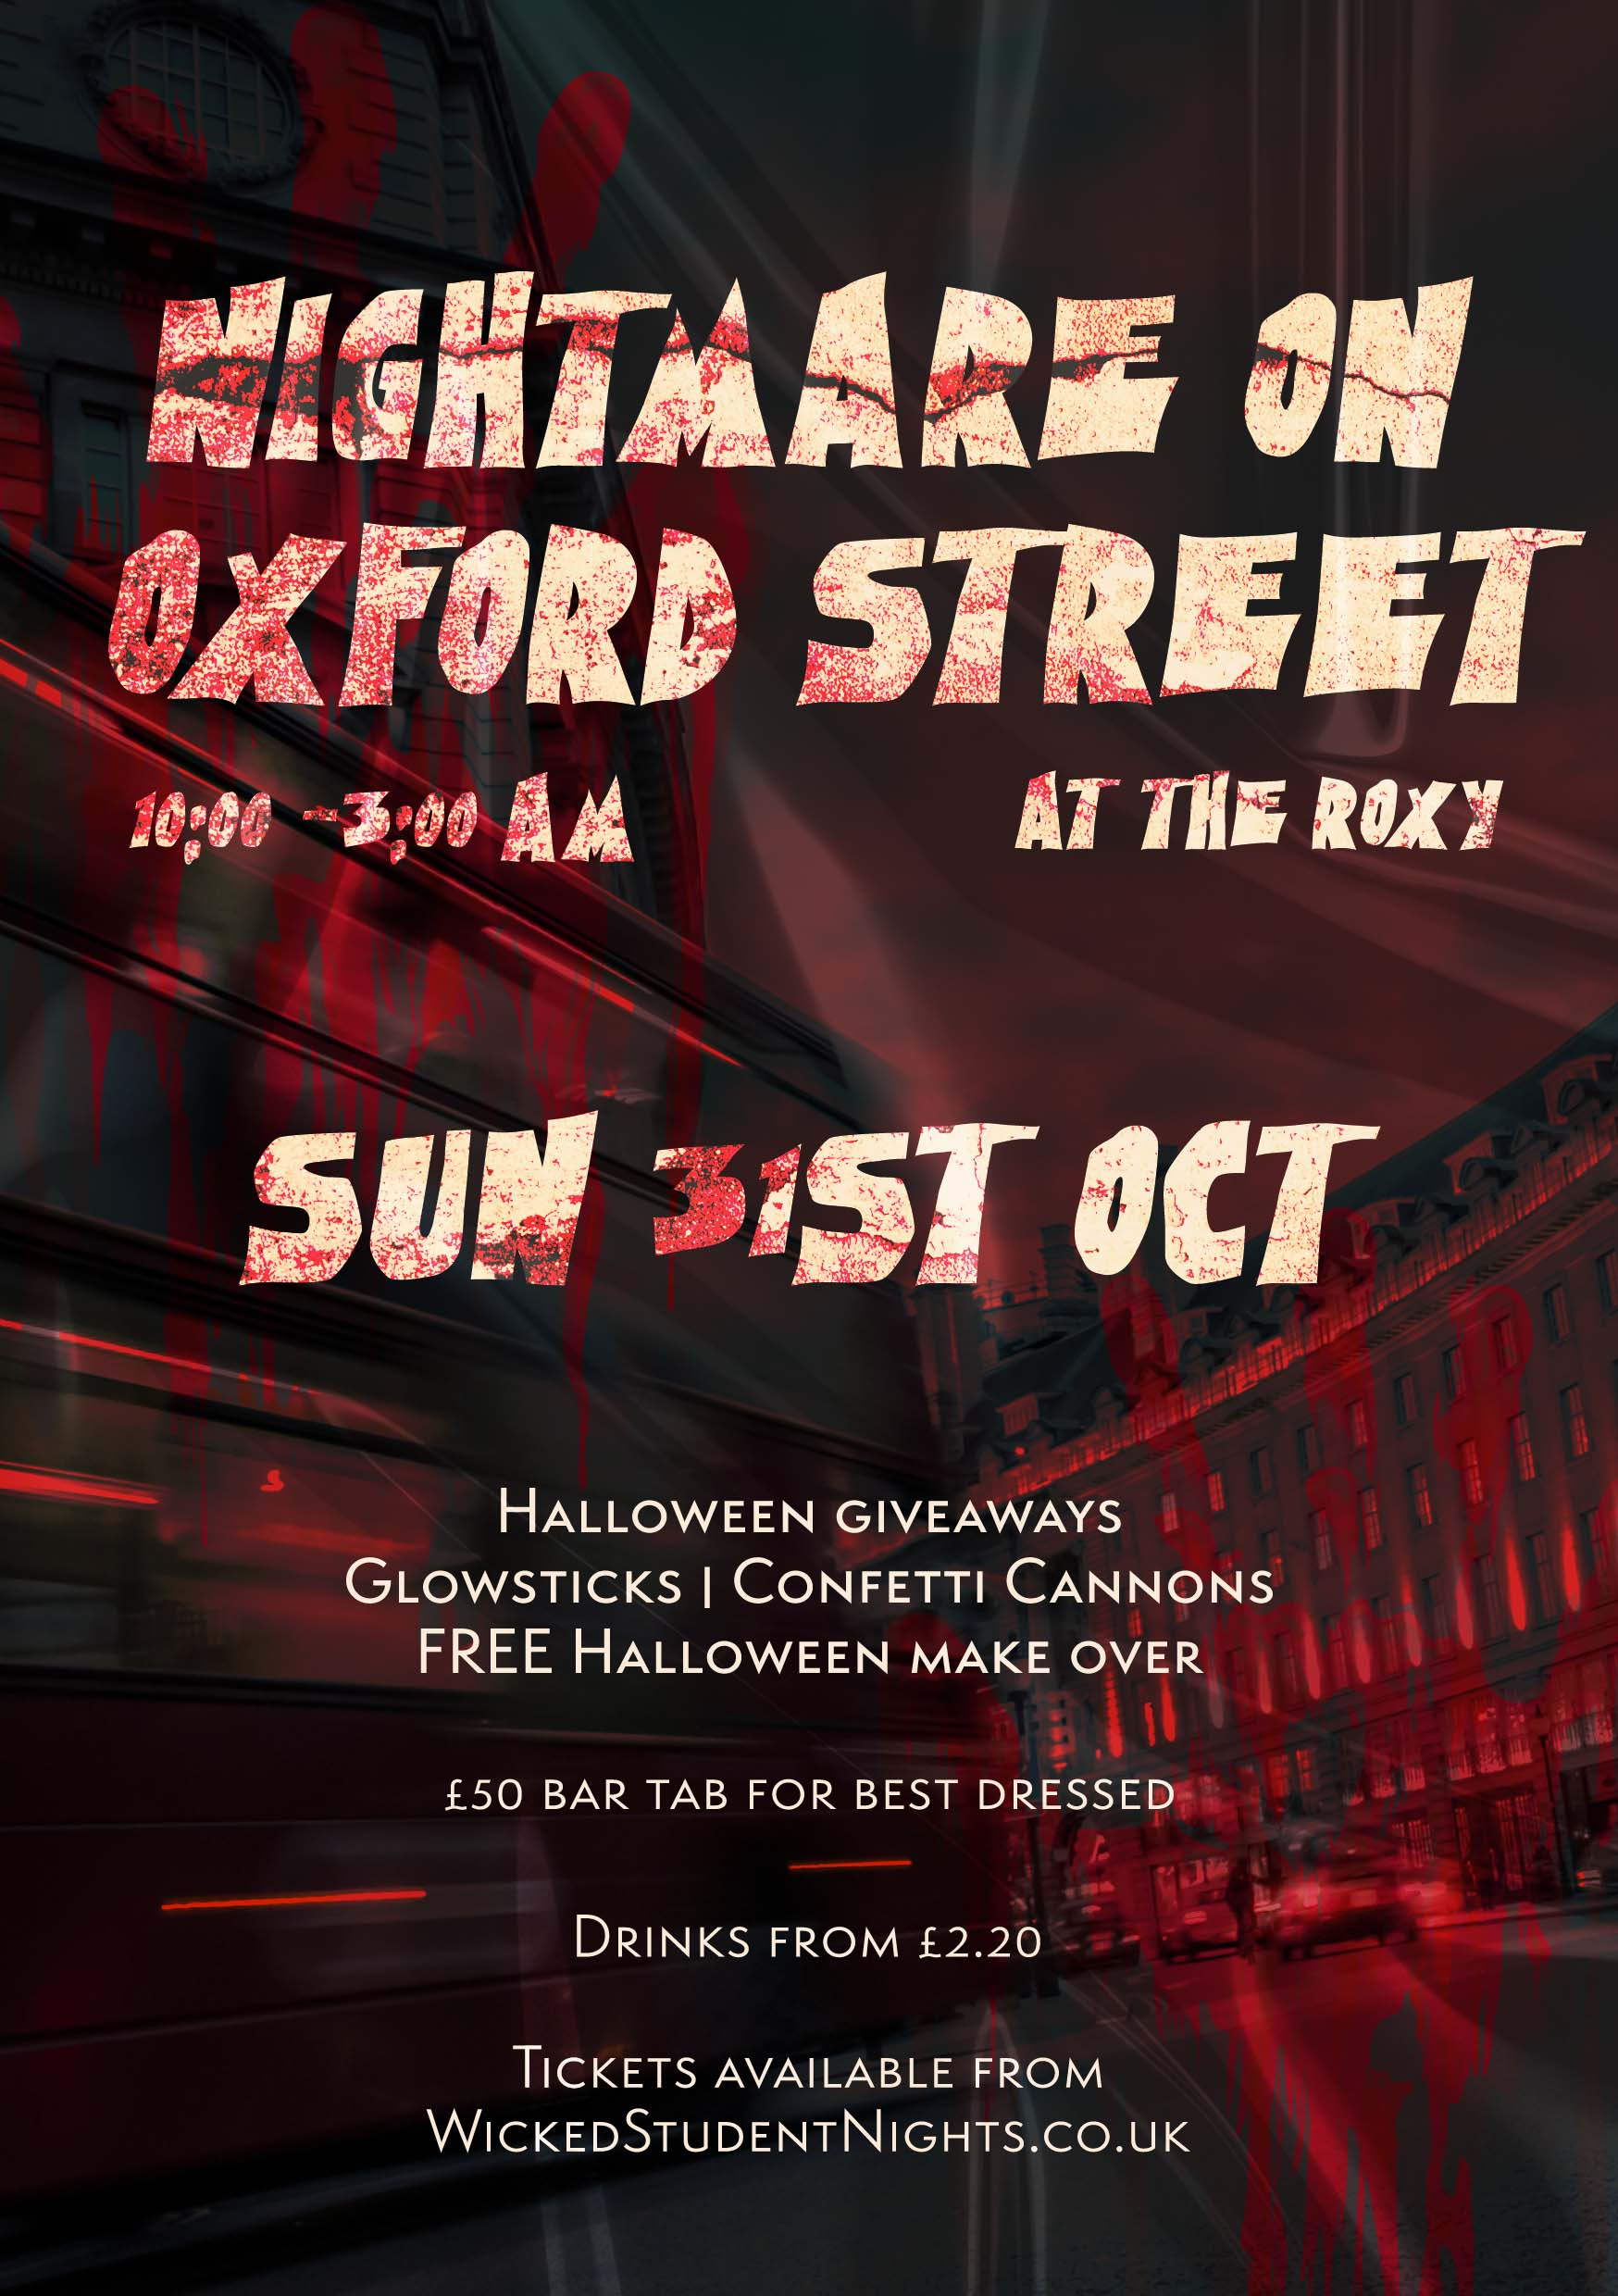 Nightmare on Oxford St, Halloween Party @ The Roxy (£2.20 Drinks)